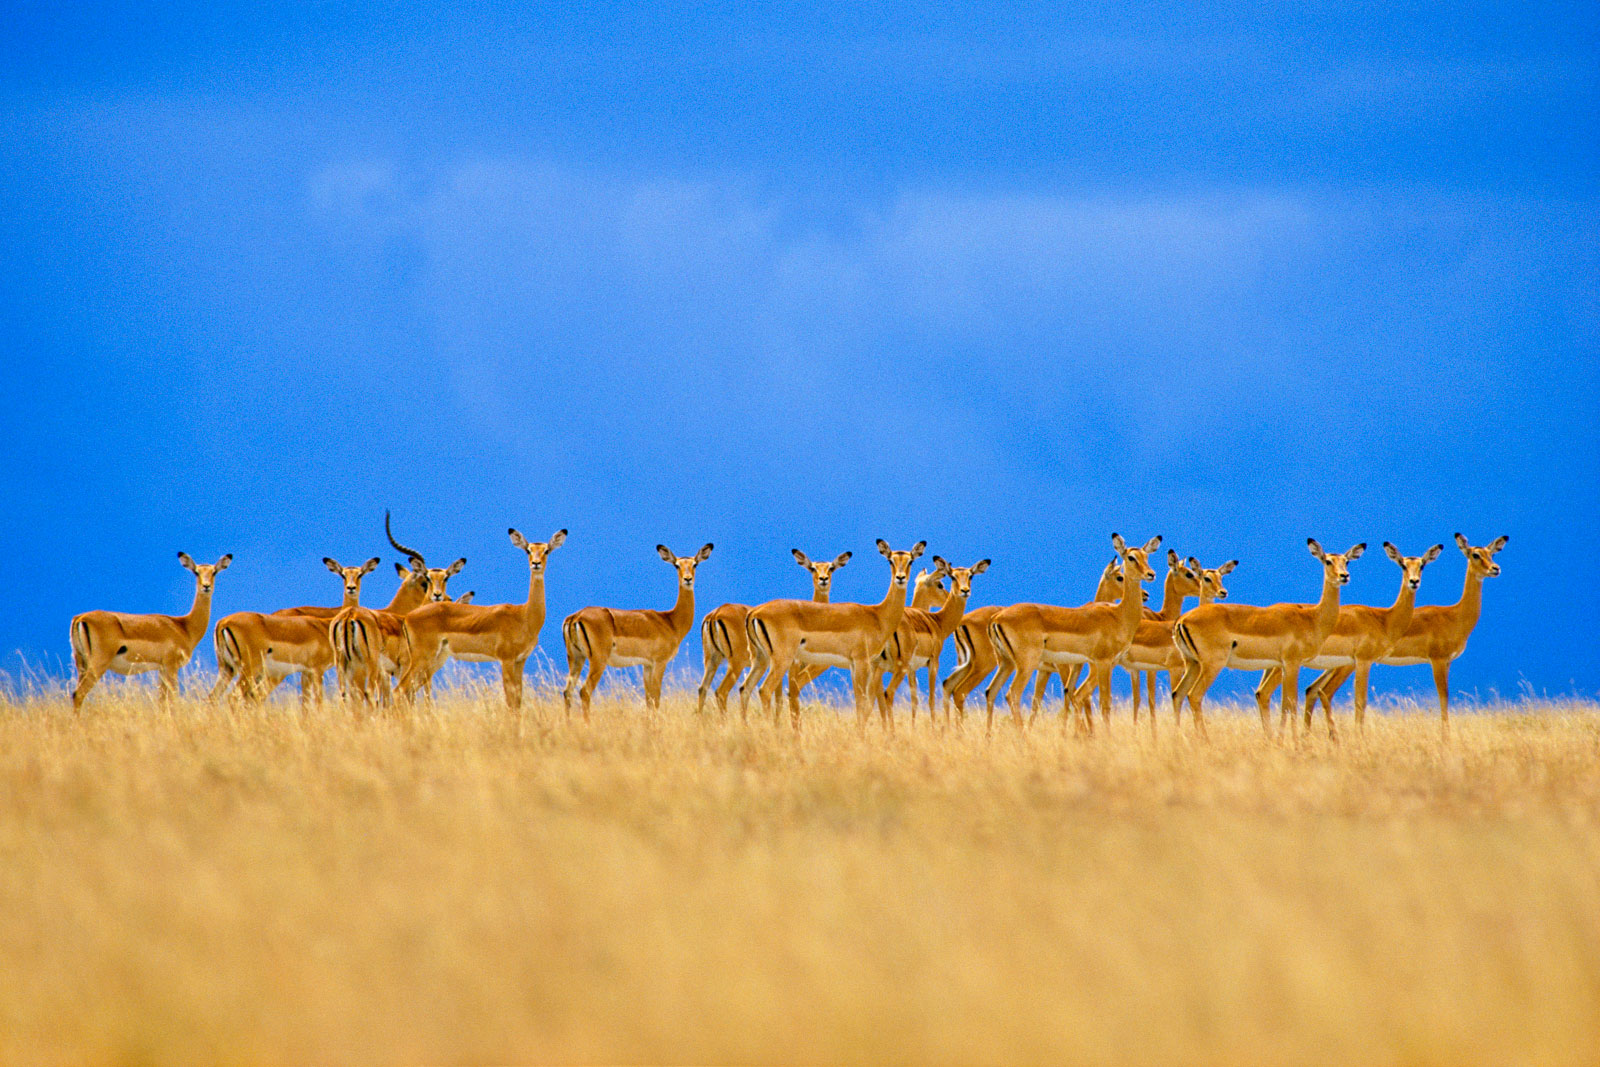 Impalas alarmed, Serengeti National Park, Tanzania